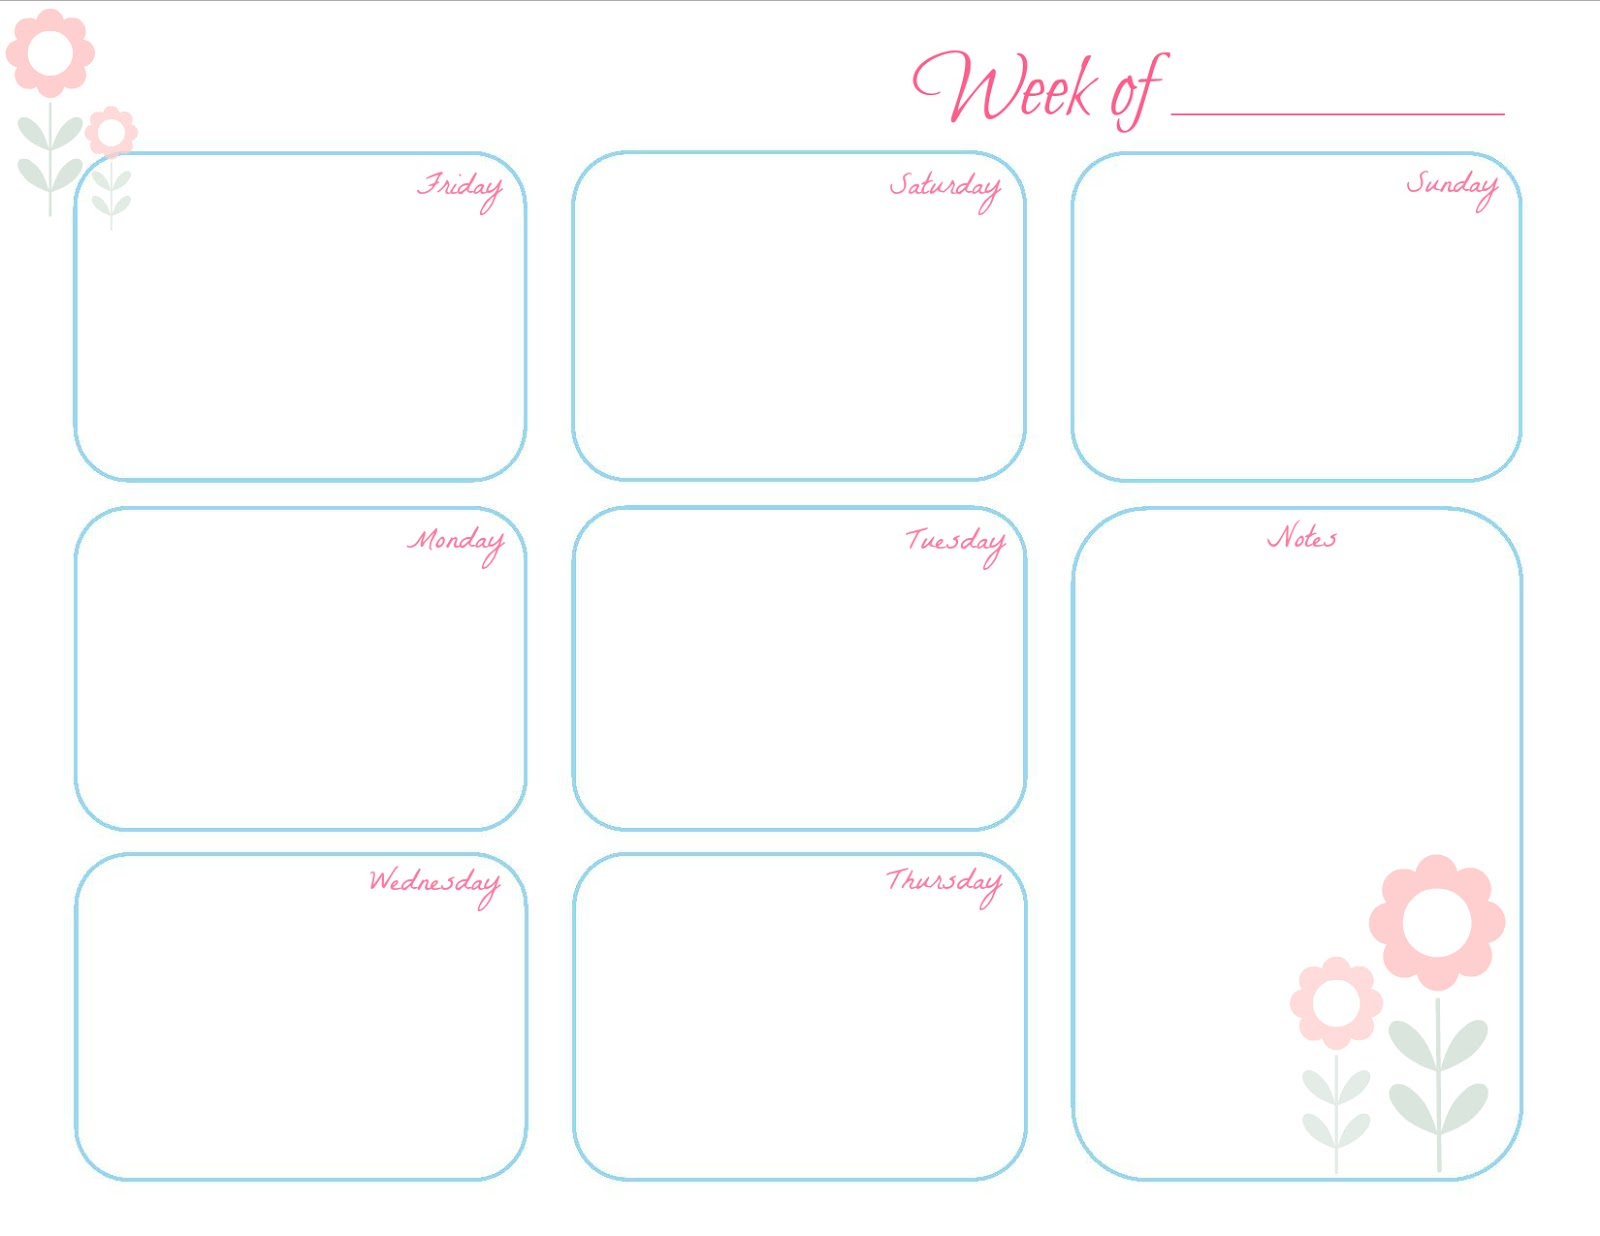 Love 2 Decorate: Weekly Planner - Free Printable